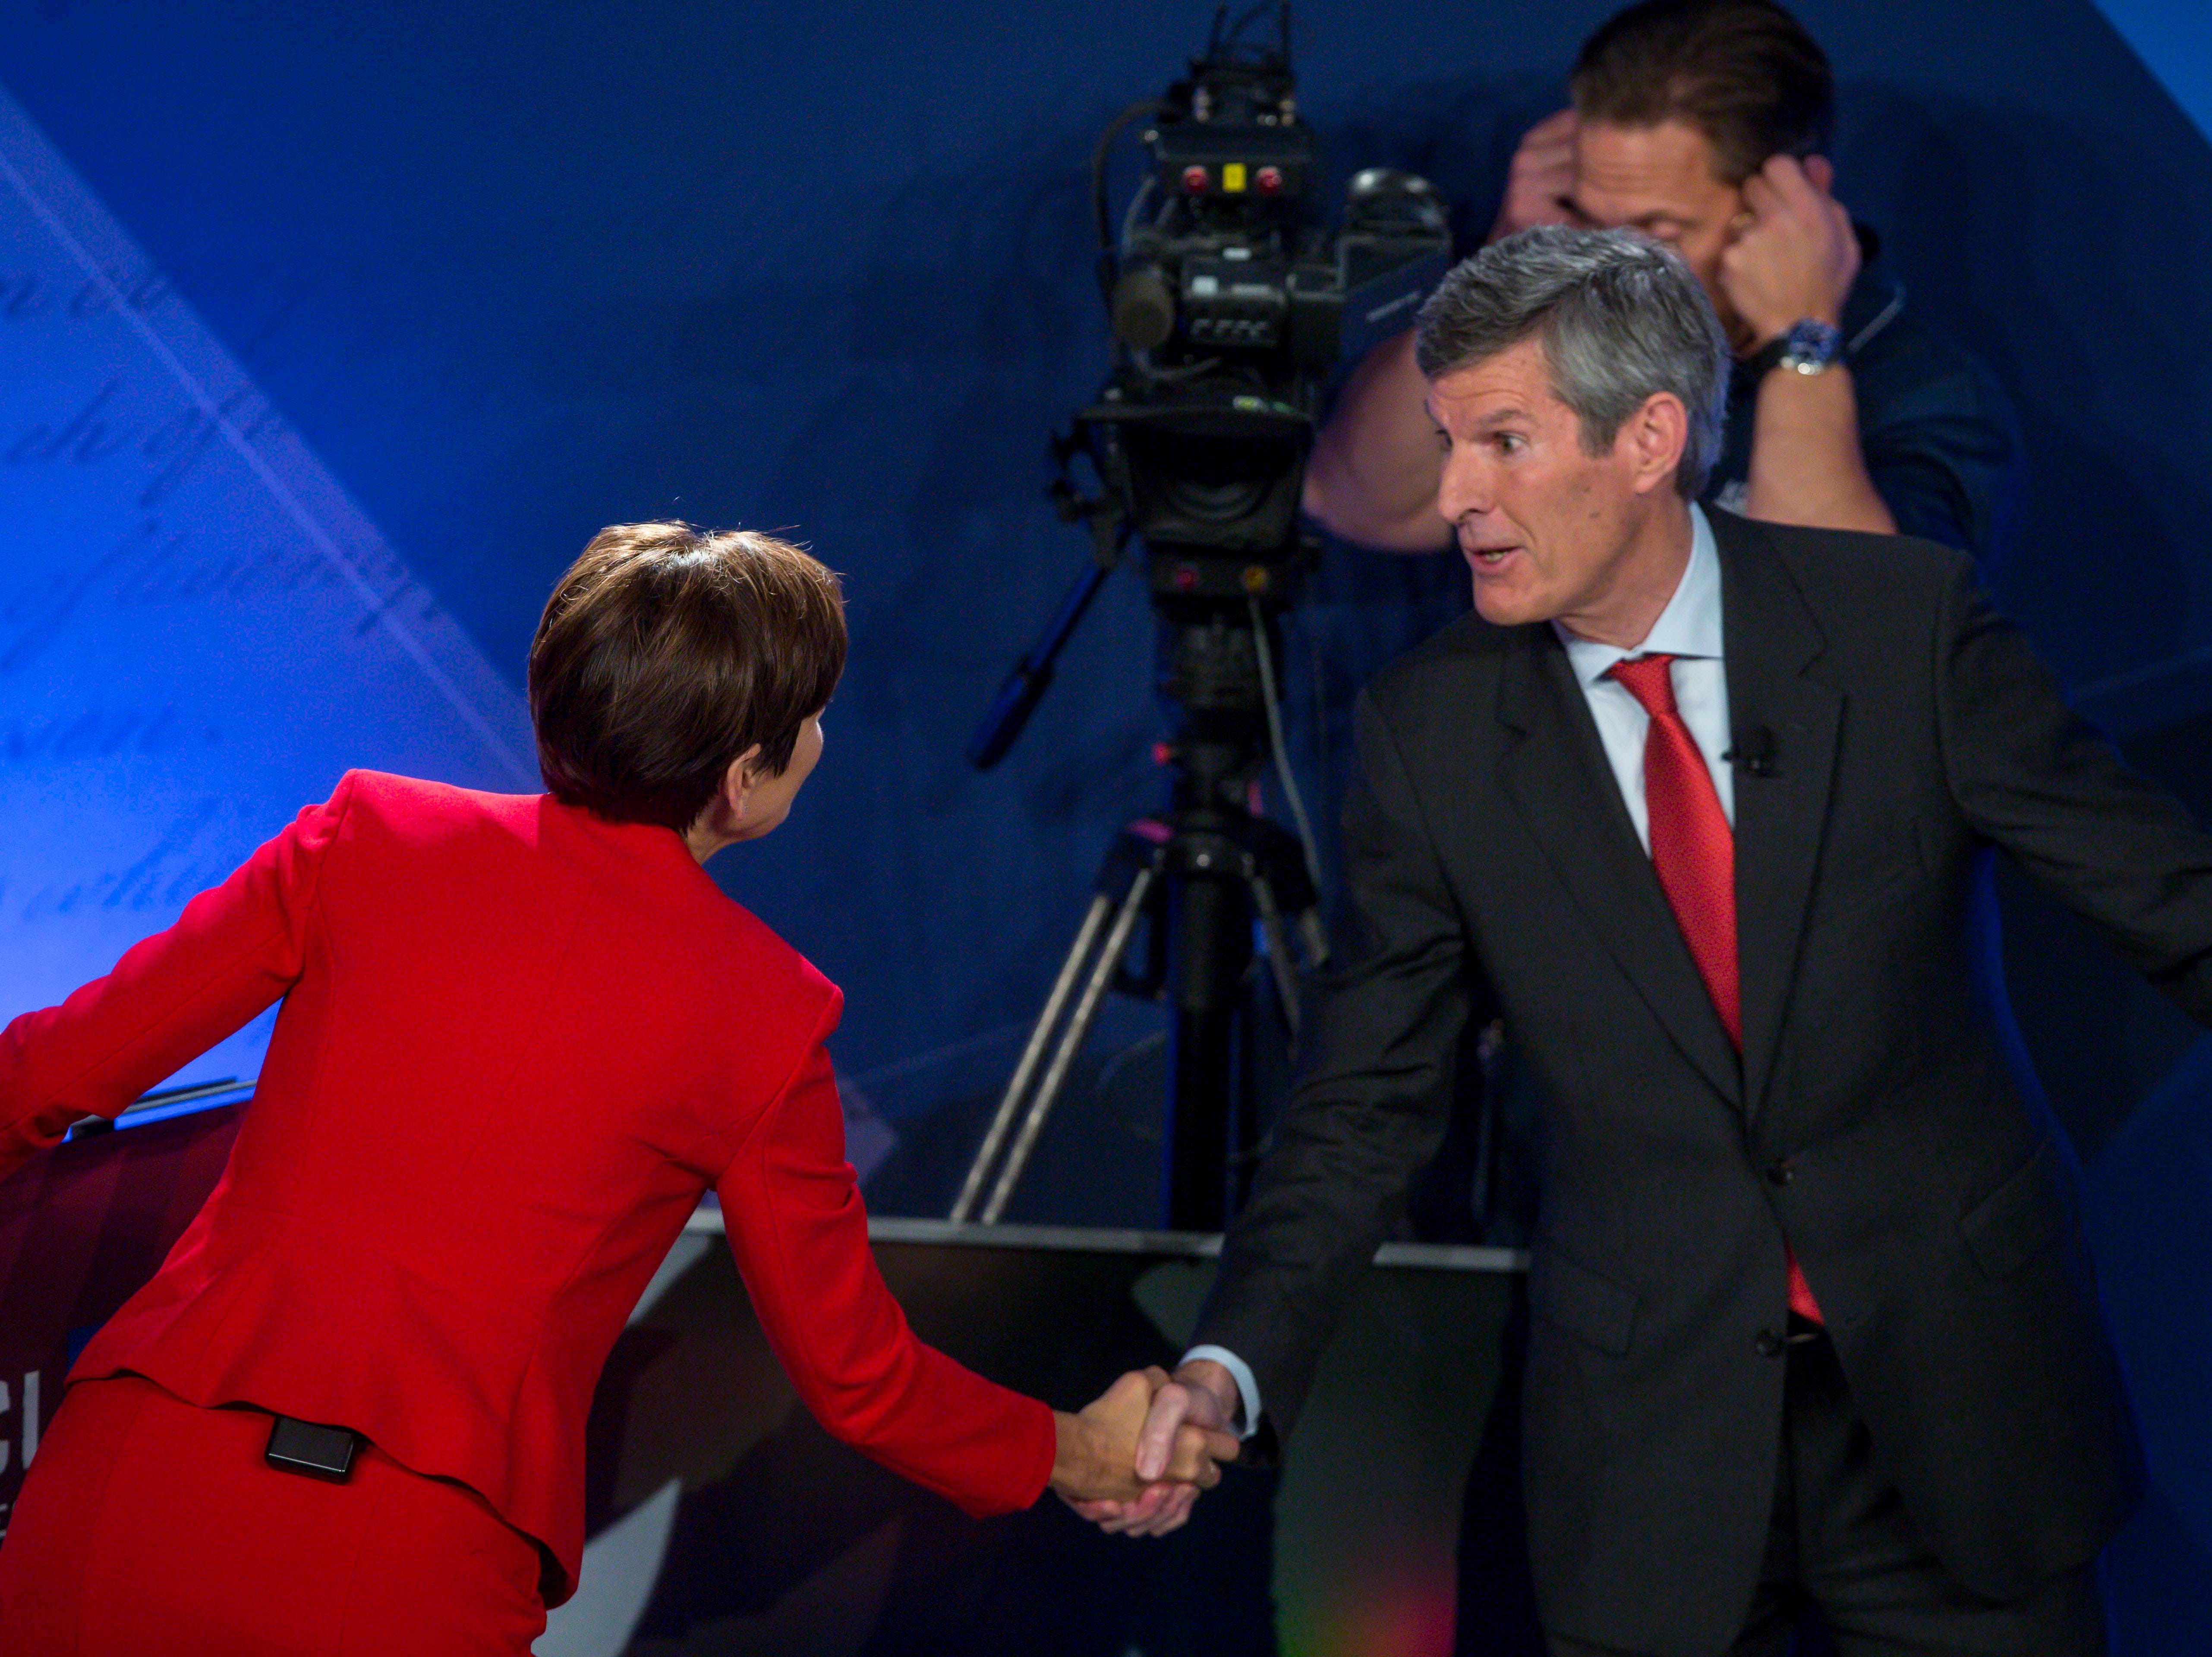 Republican Iowa Gov. Kim Reynolds and Democratic challenger Fred Hubbell shake hands after their debate Wednesday, Oct. 10, 2018, at Des Moines Area Community College in Ankeny, Iowa.